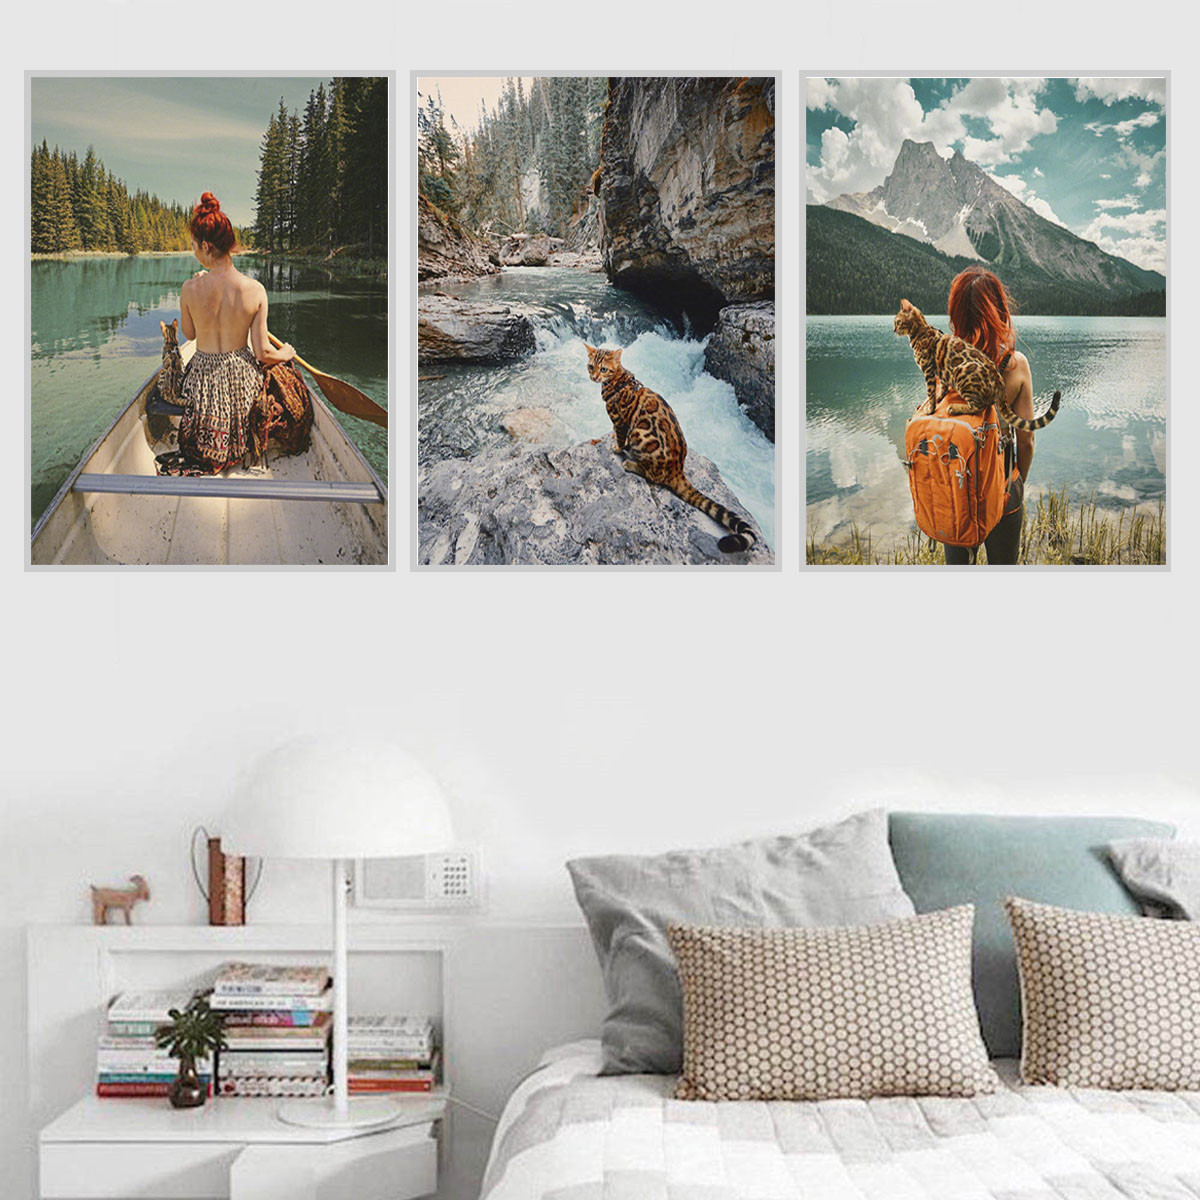 Details about cat travel mountain canvas painting poster living room bedroom wall art decor